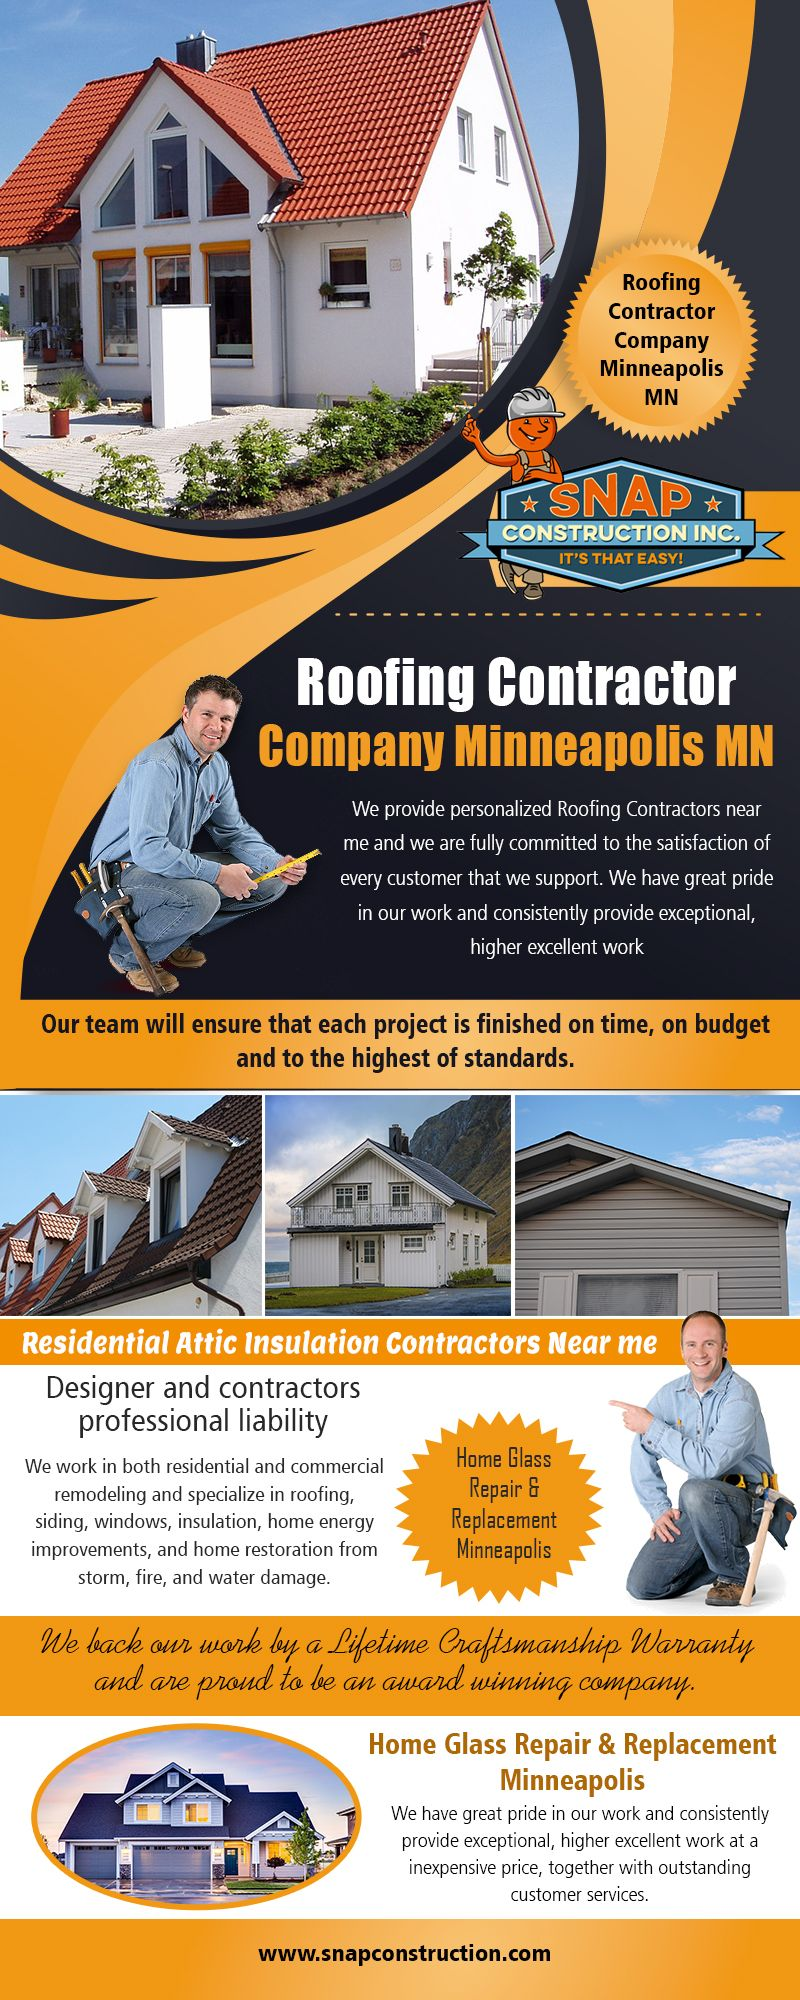 Roofing Contractor Company In Minneapolis Mn Roofing Contractors